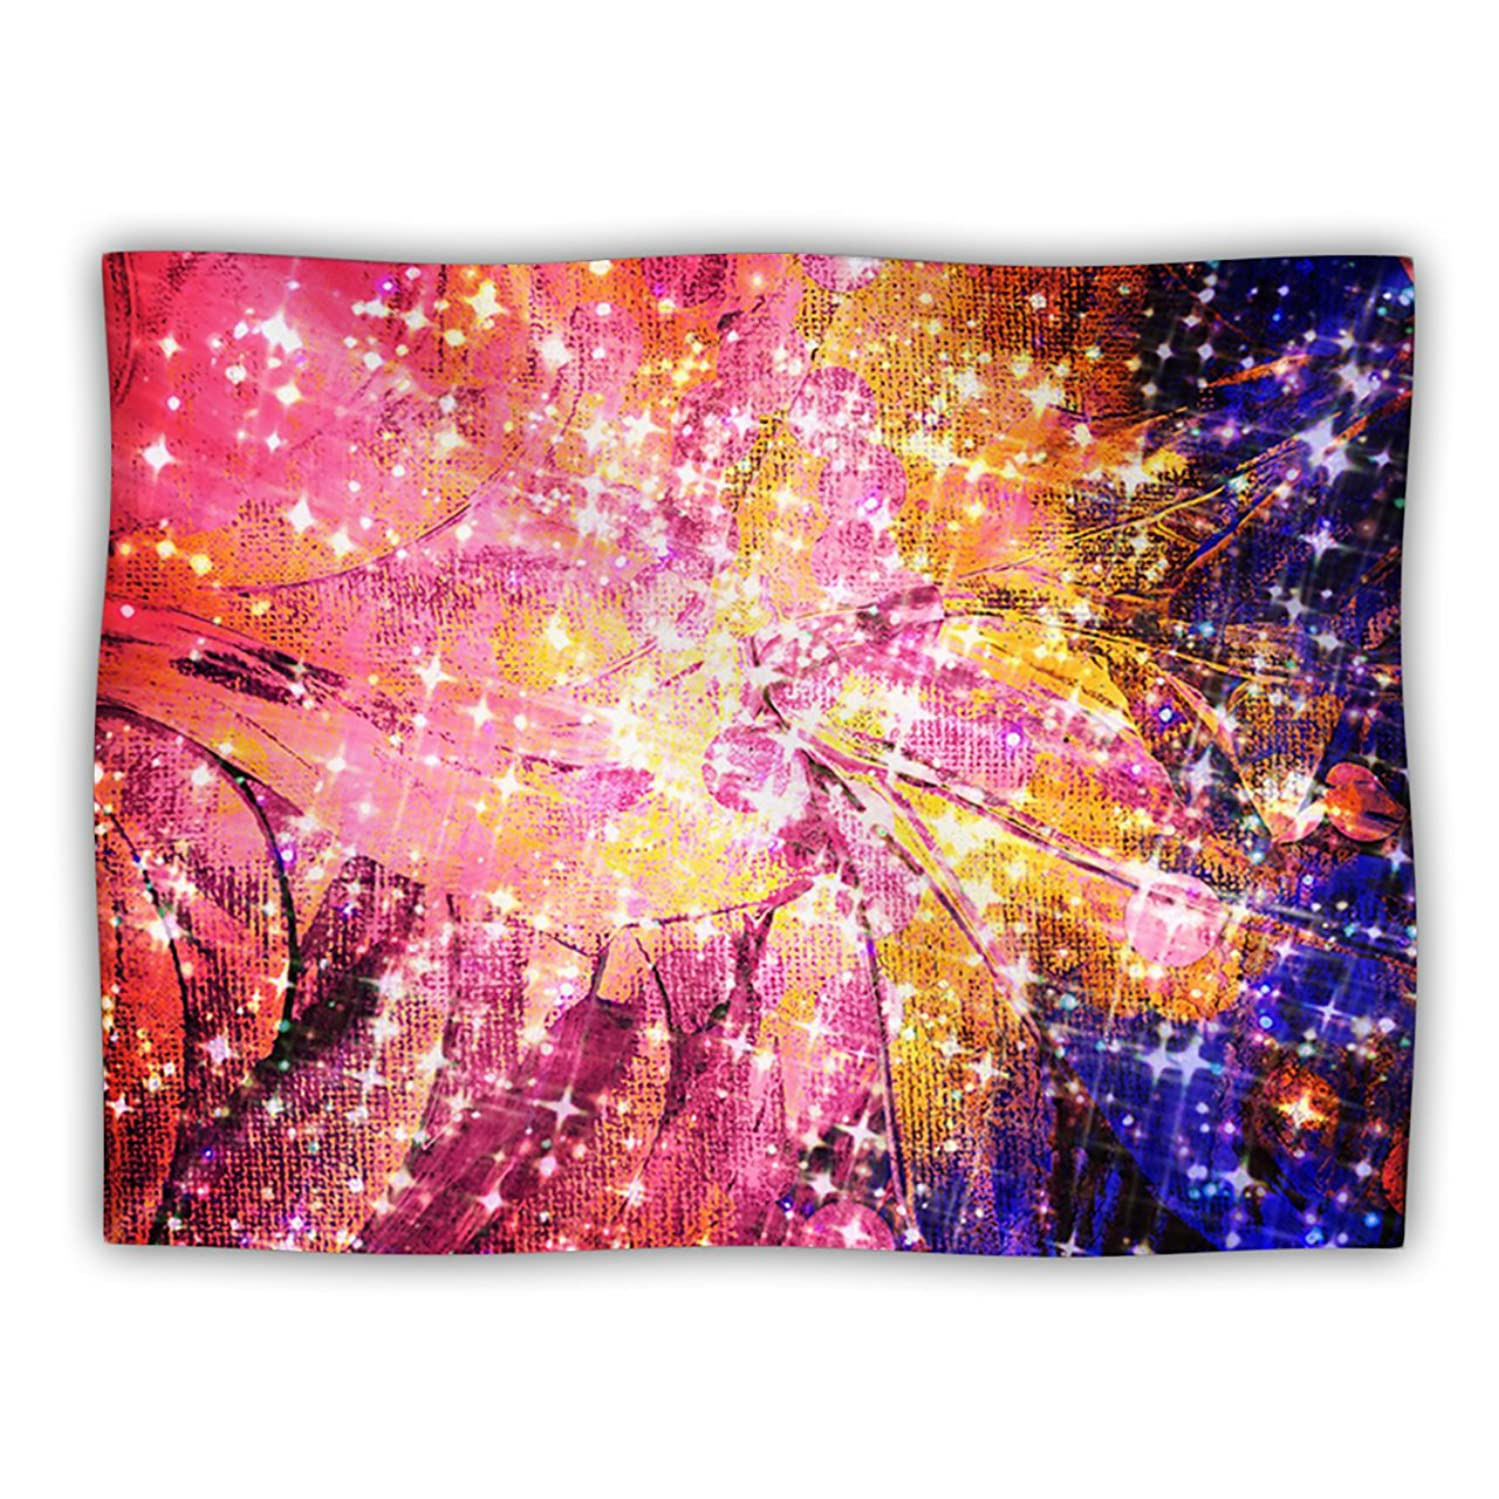 KESS InHouse EBI Emporium 'Out There' Pink Yellow Dog Blanket, 40 by 30-Inch